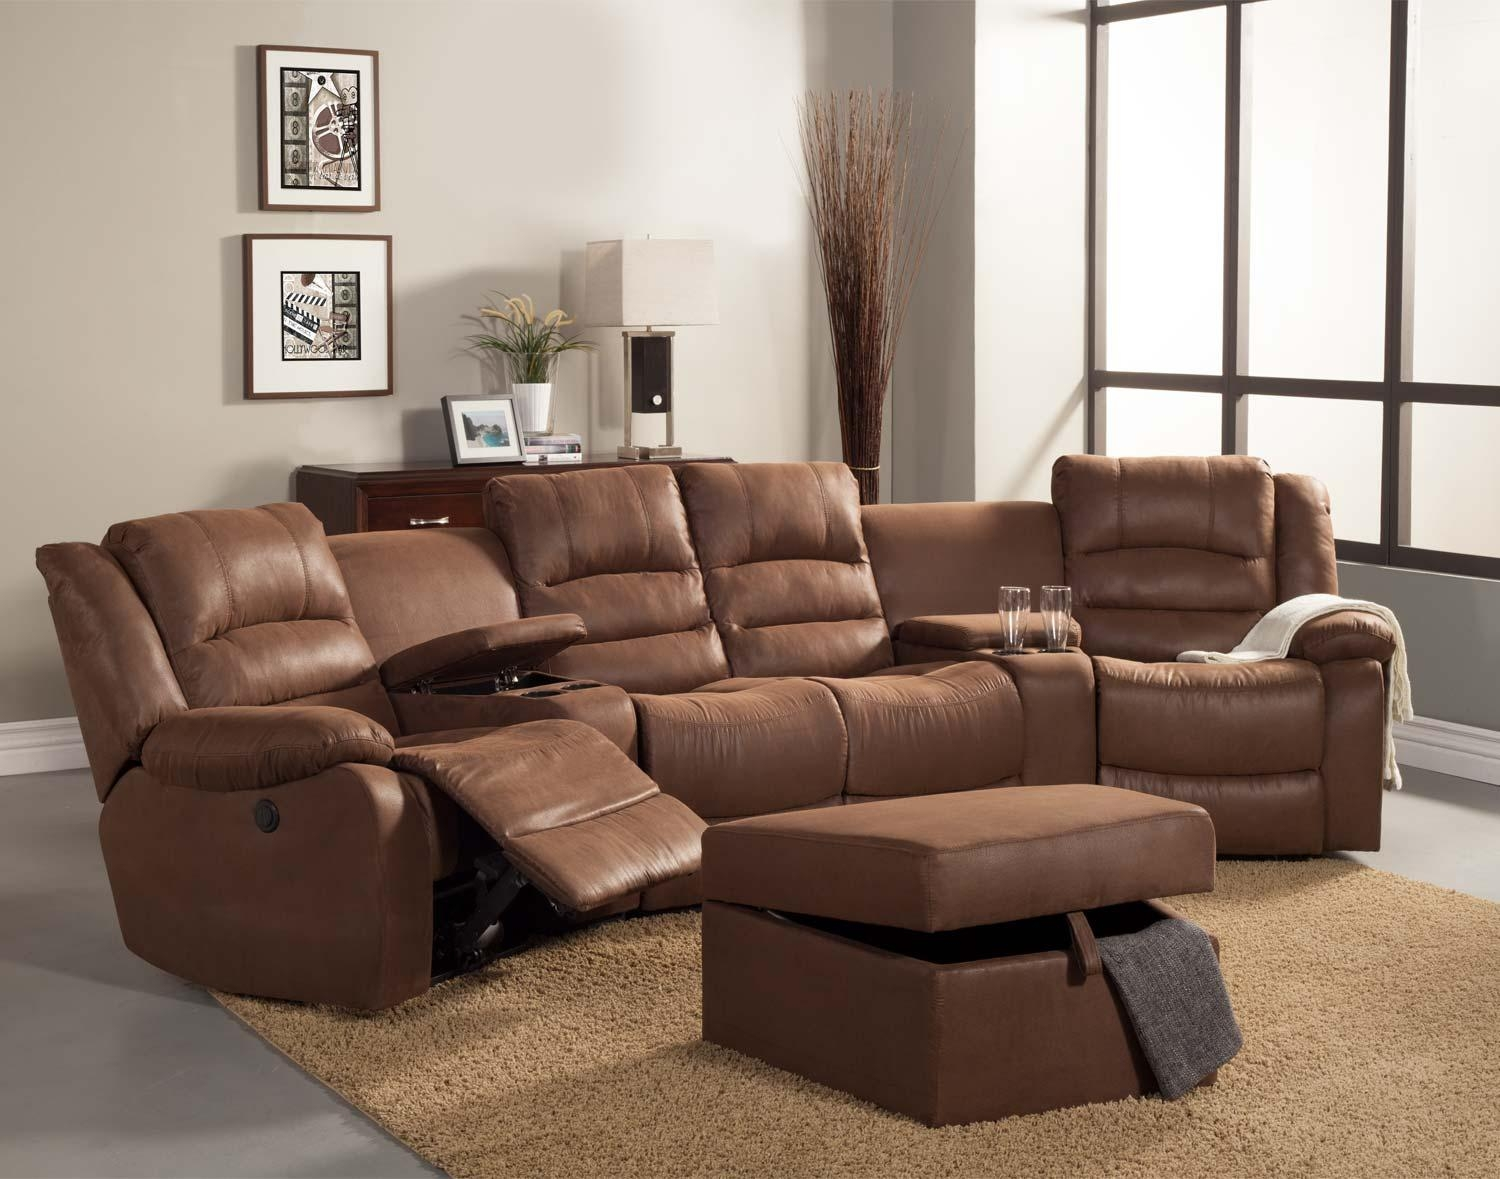 Homelegance Tucker Sectional Sofa Set – Brown – Bomber Jacket With Bomber Leather Sofas (View 17 of 20)